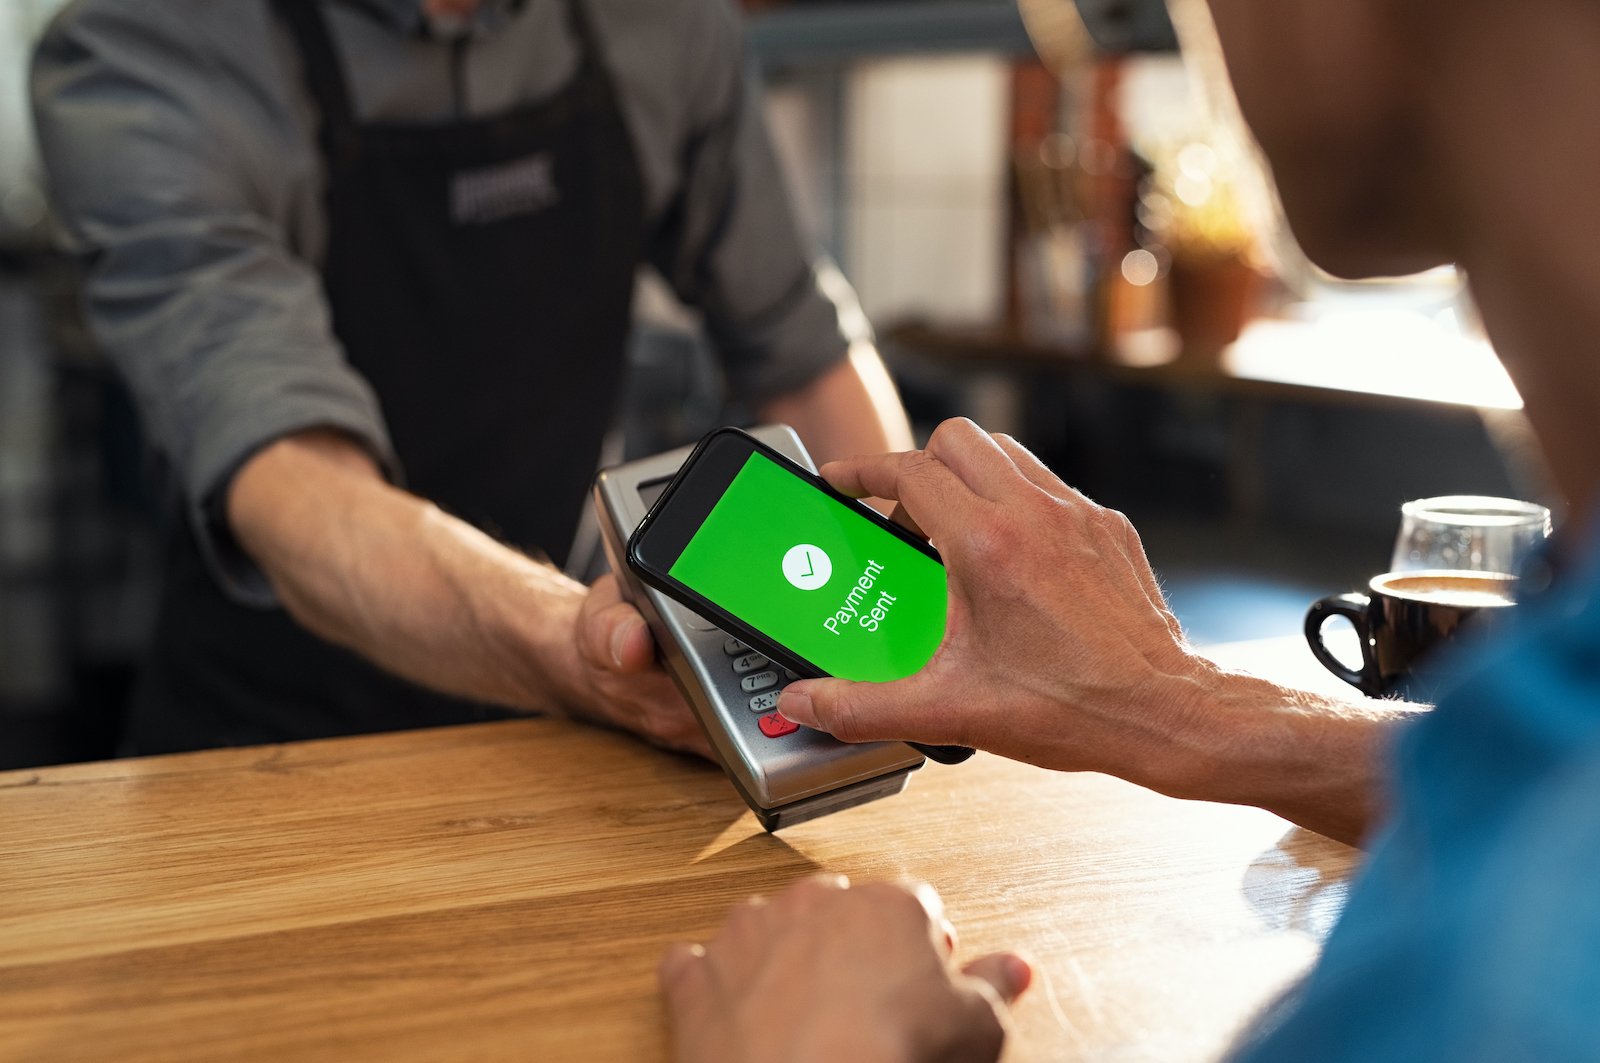 App development must integrate features customers want, in order to simplify tasks—such as mobile wallets.